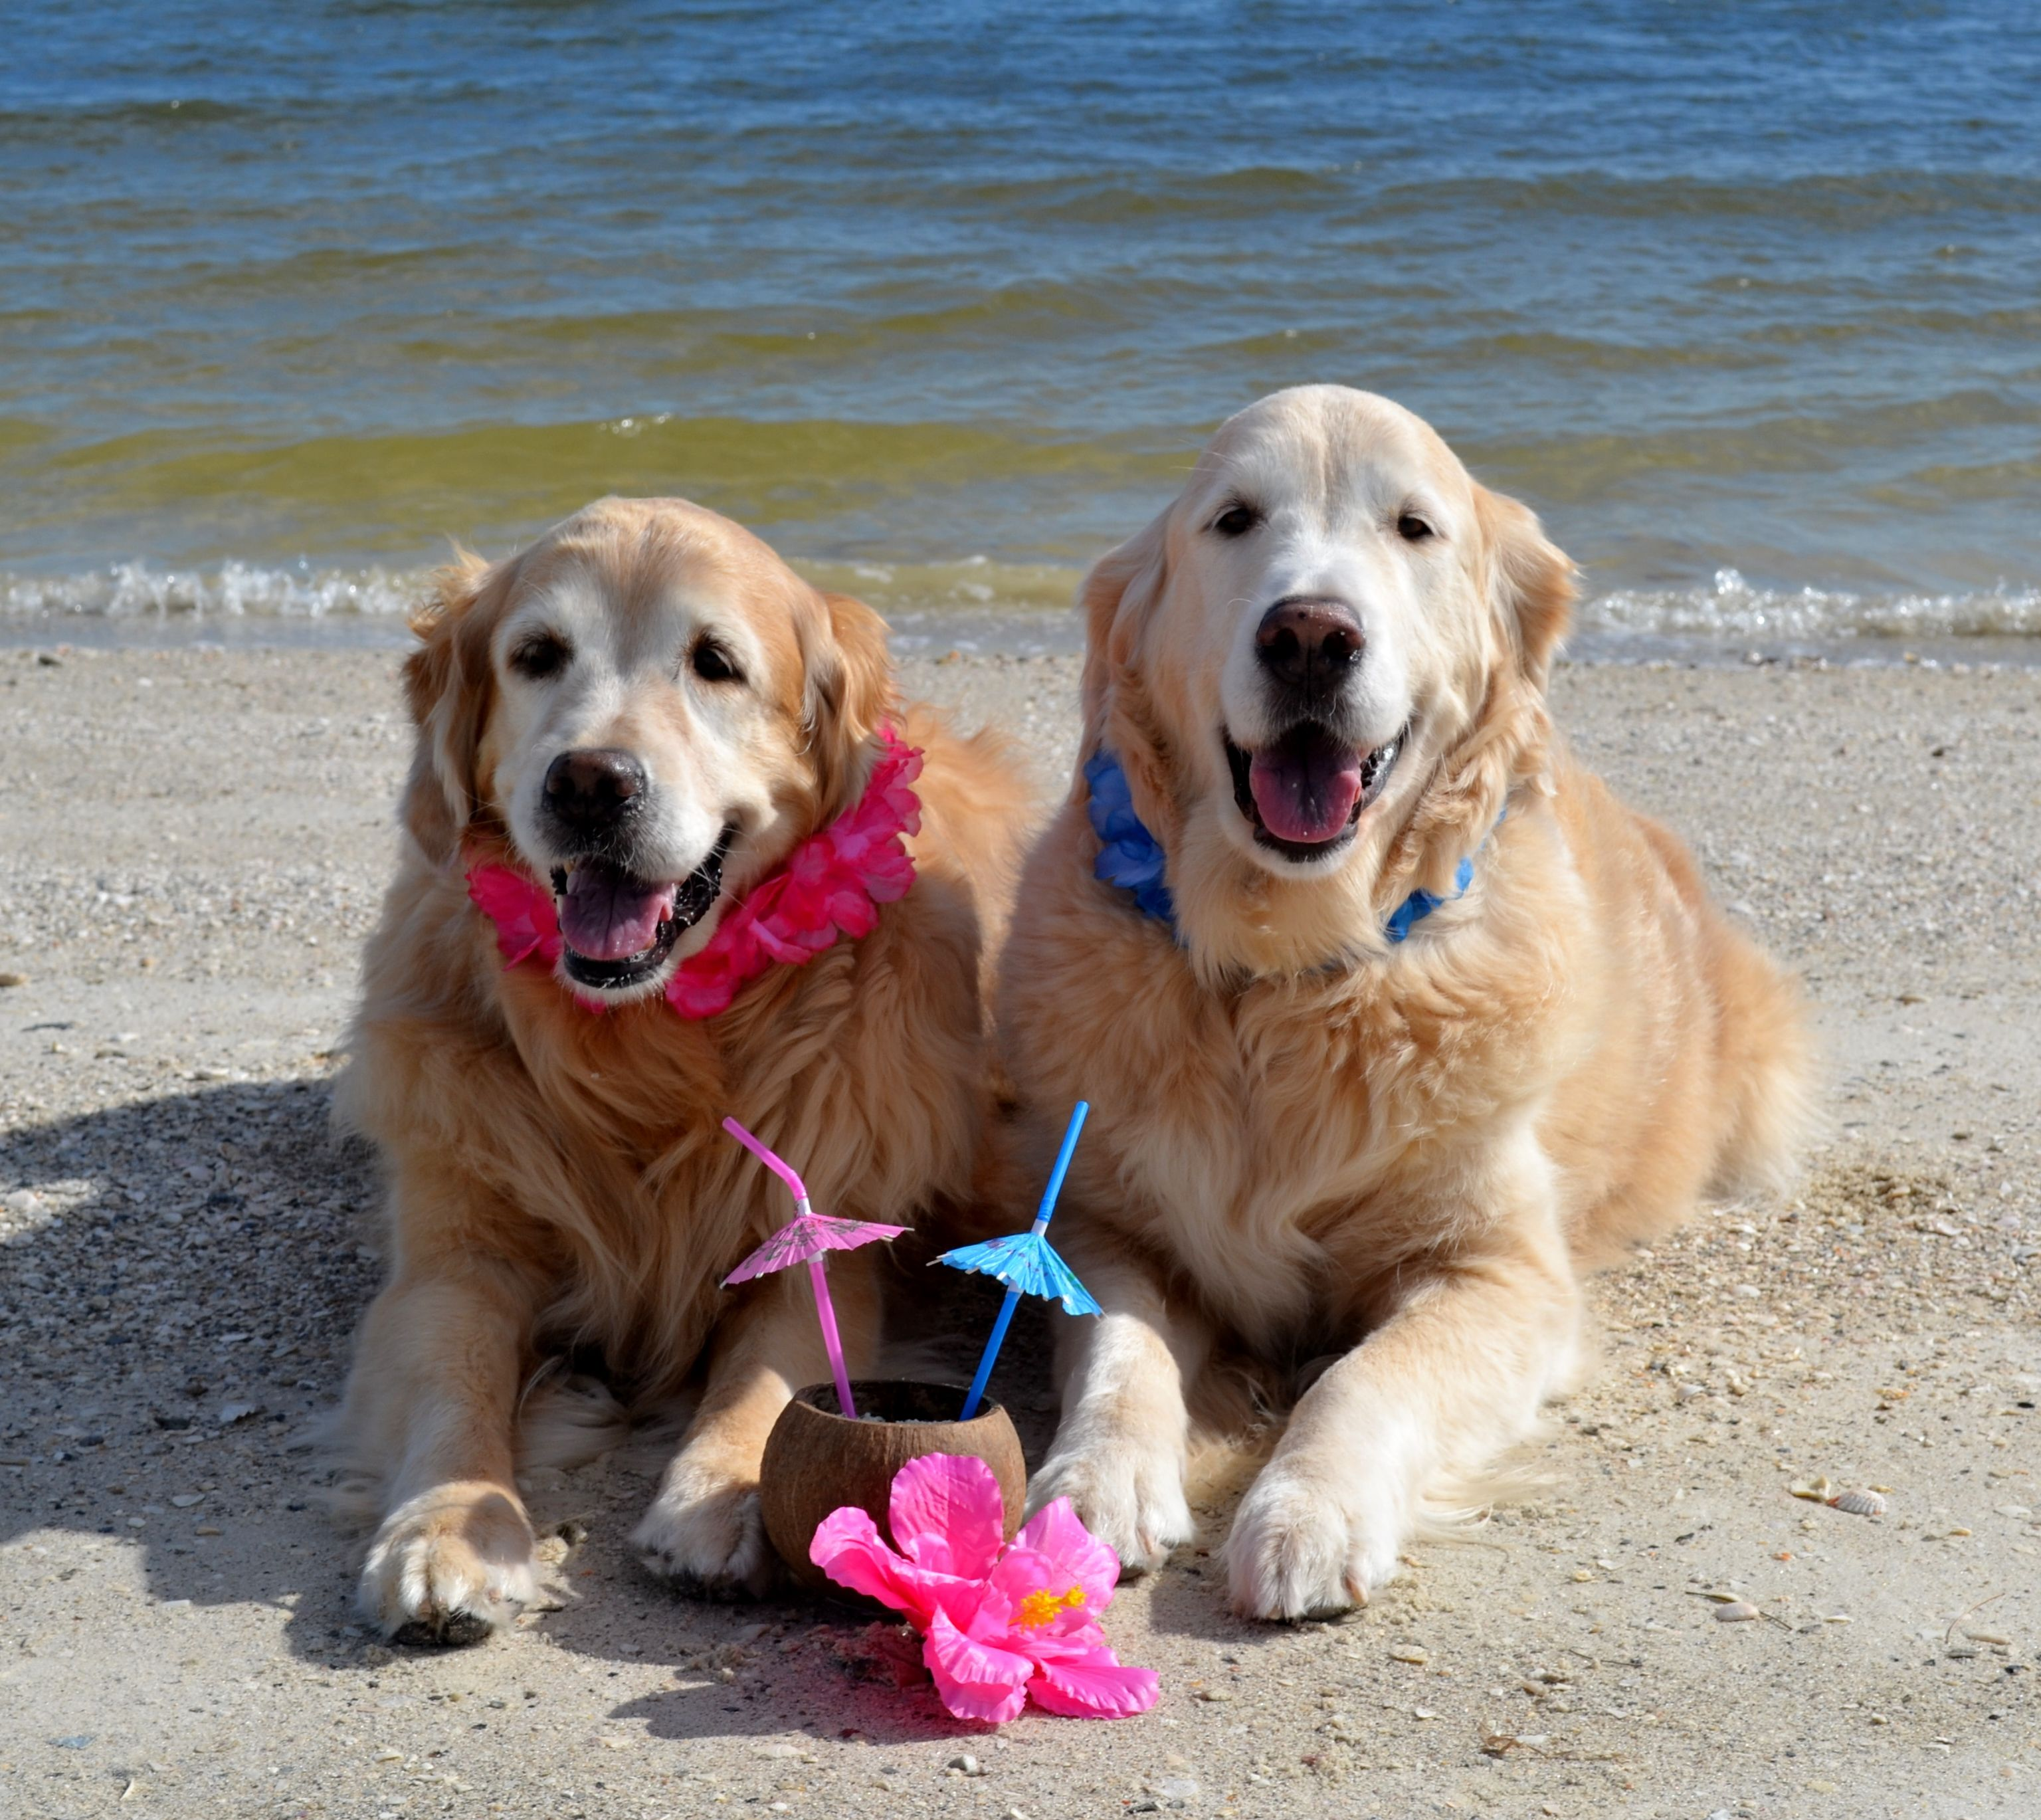 Tropical Day D Brie And Ben Dogs And Puppies Golden Retriever Tropical